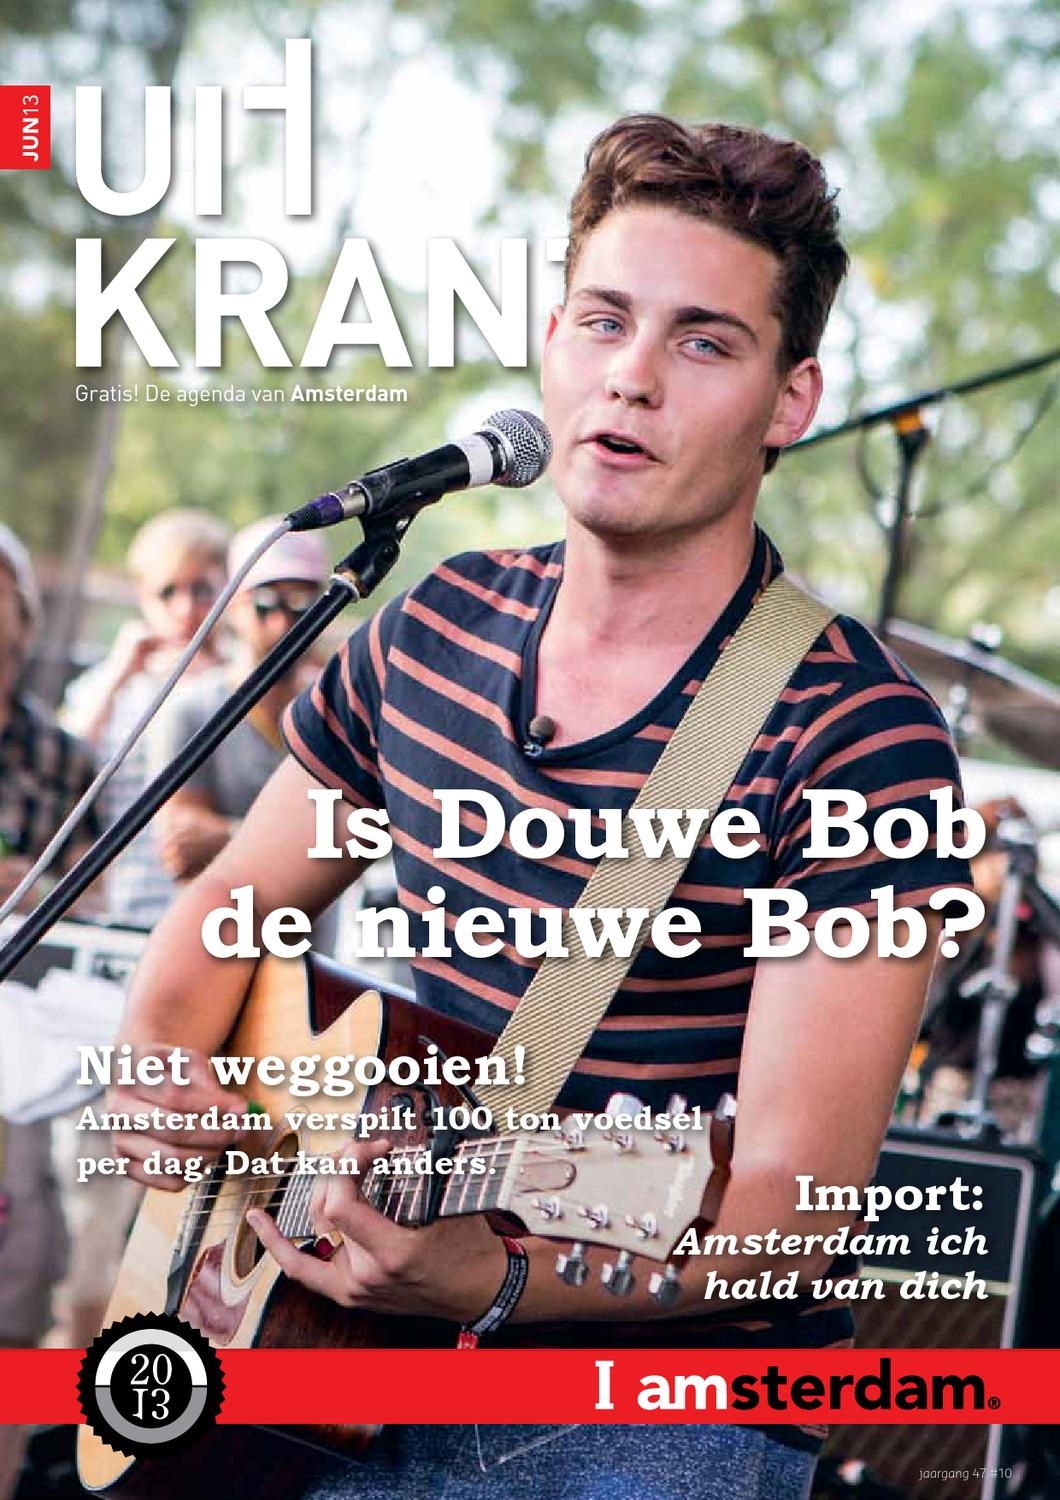 Uitkrant mei by amsterdam marketing   issuu